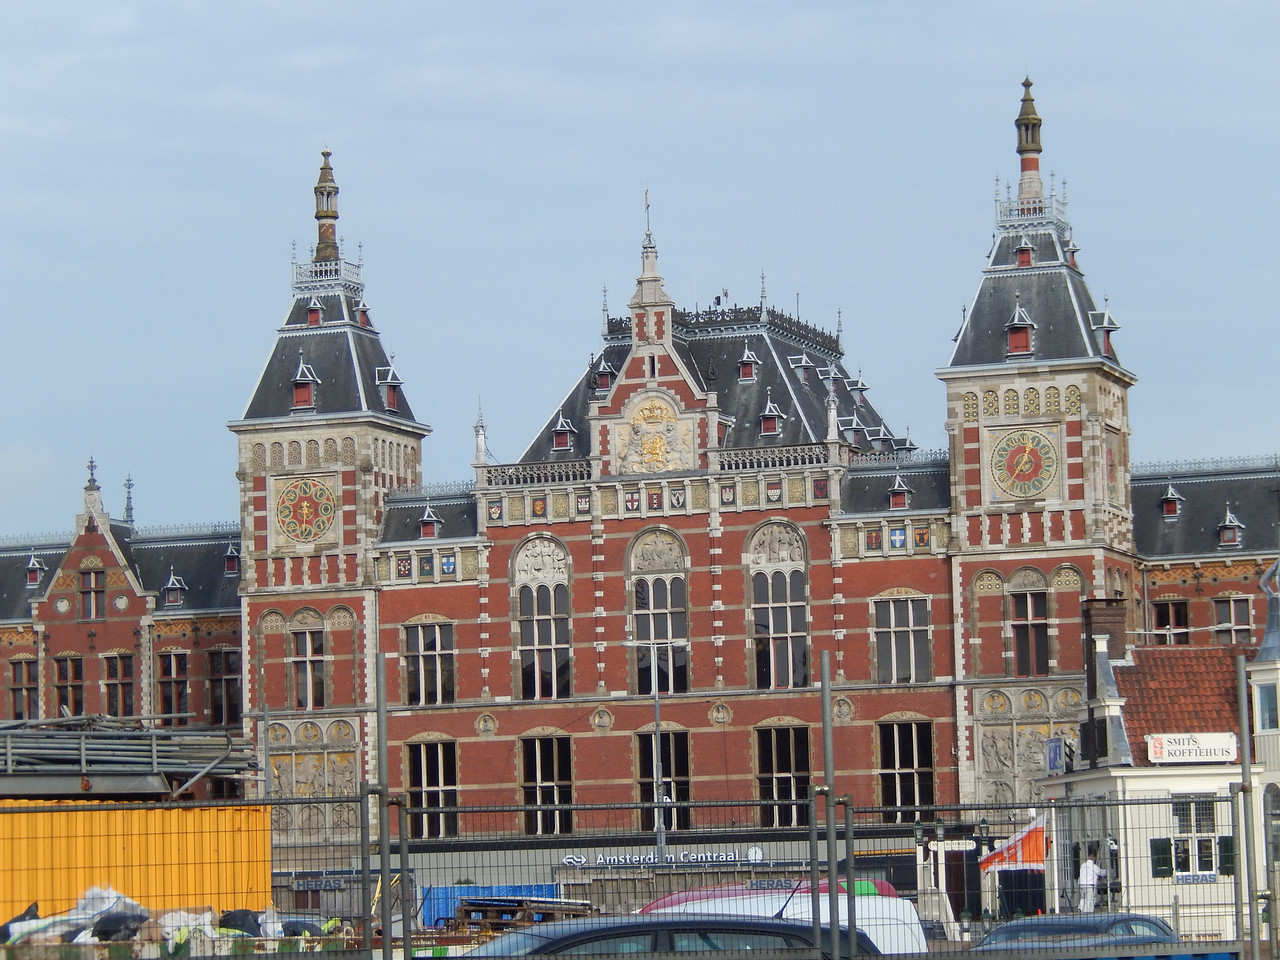 Amsterdam (18) Centraal Station